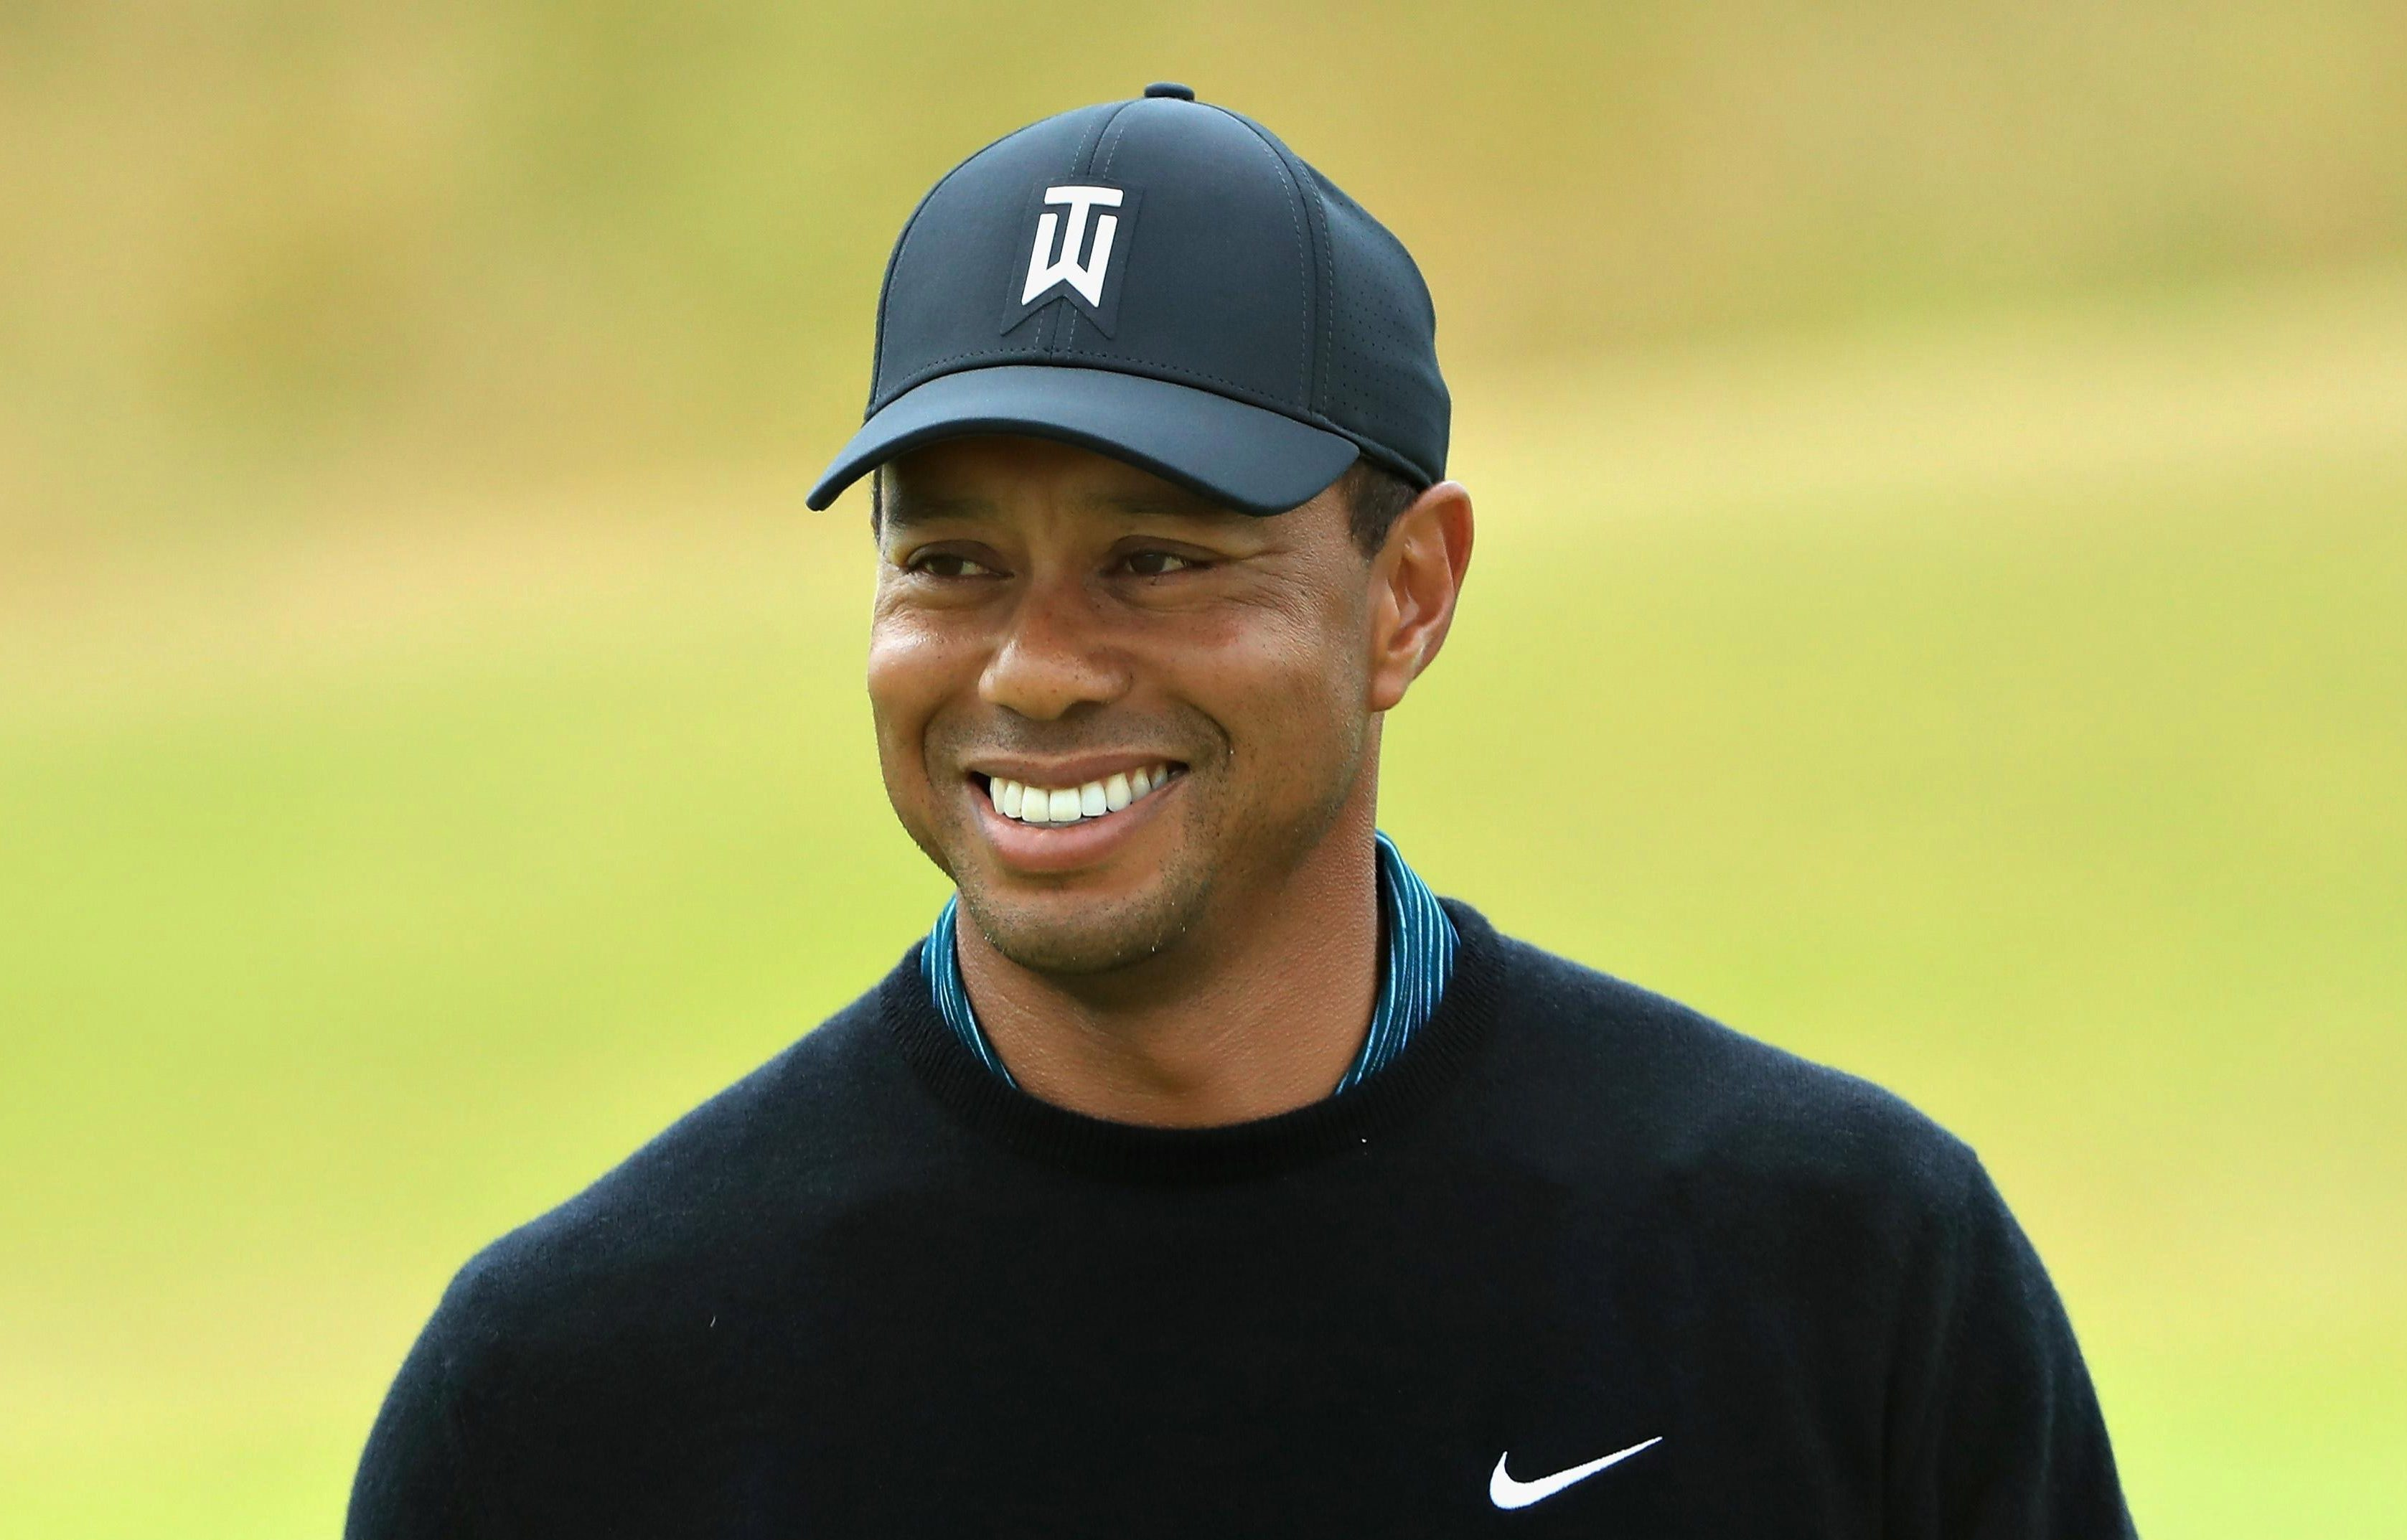 The 14-time Major champion has got off to a solid start at Carnoustie